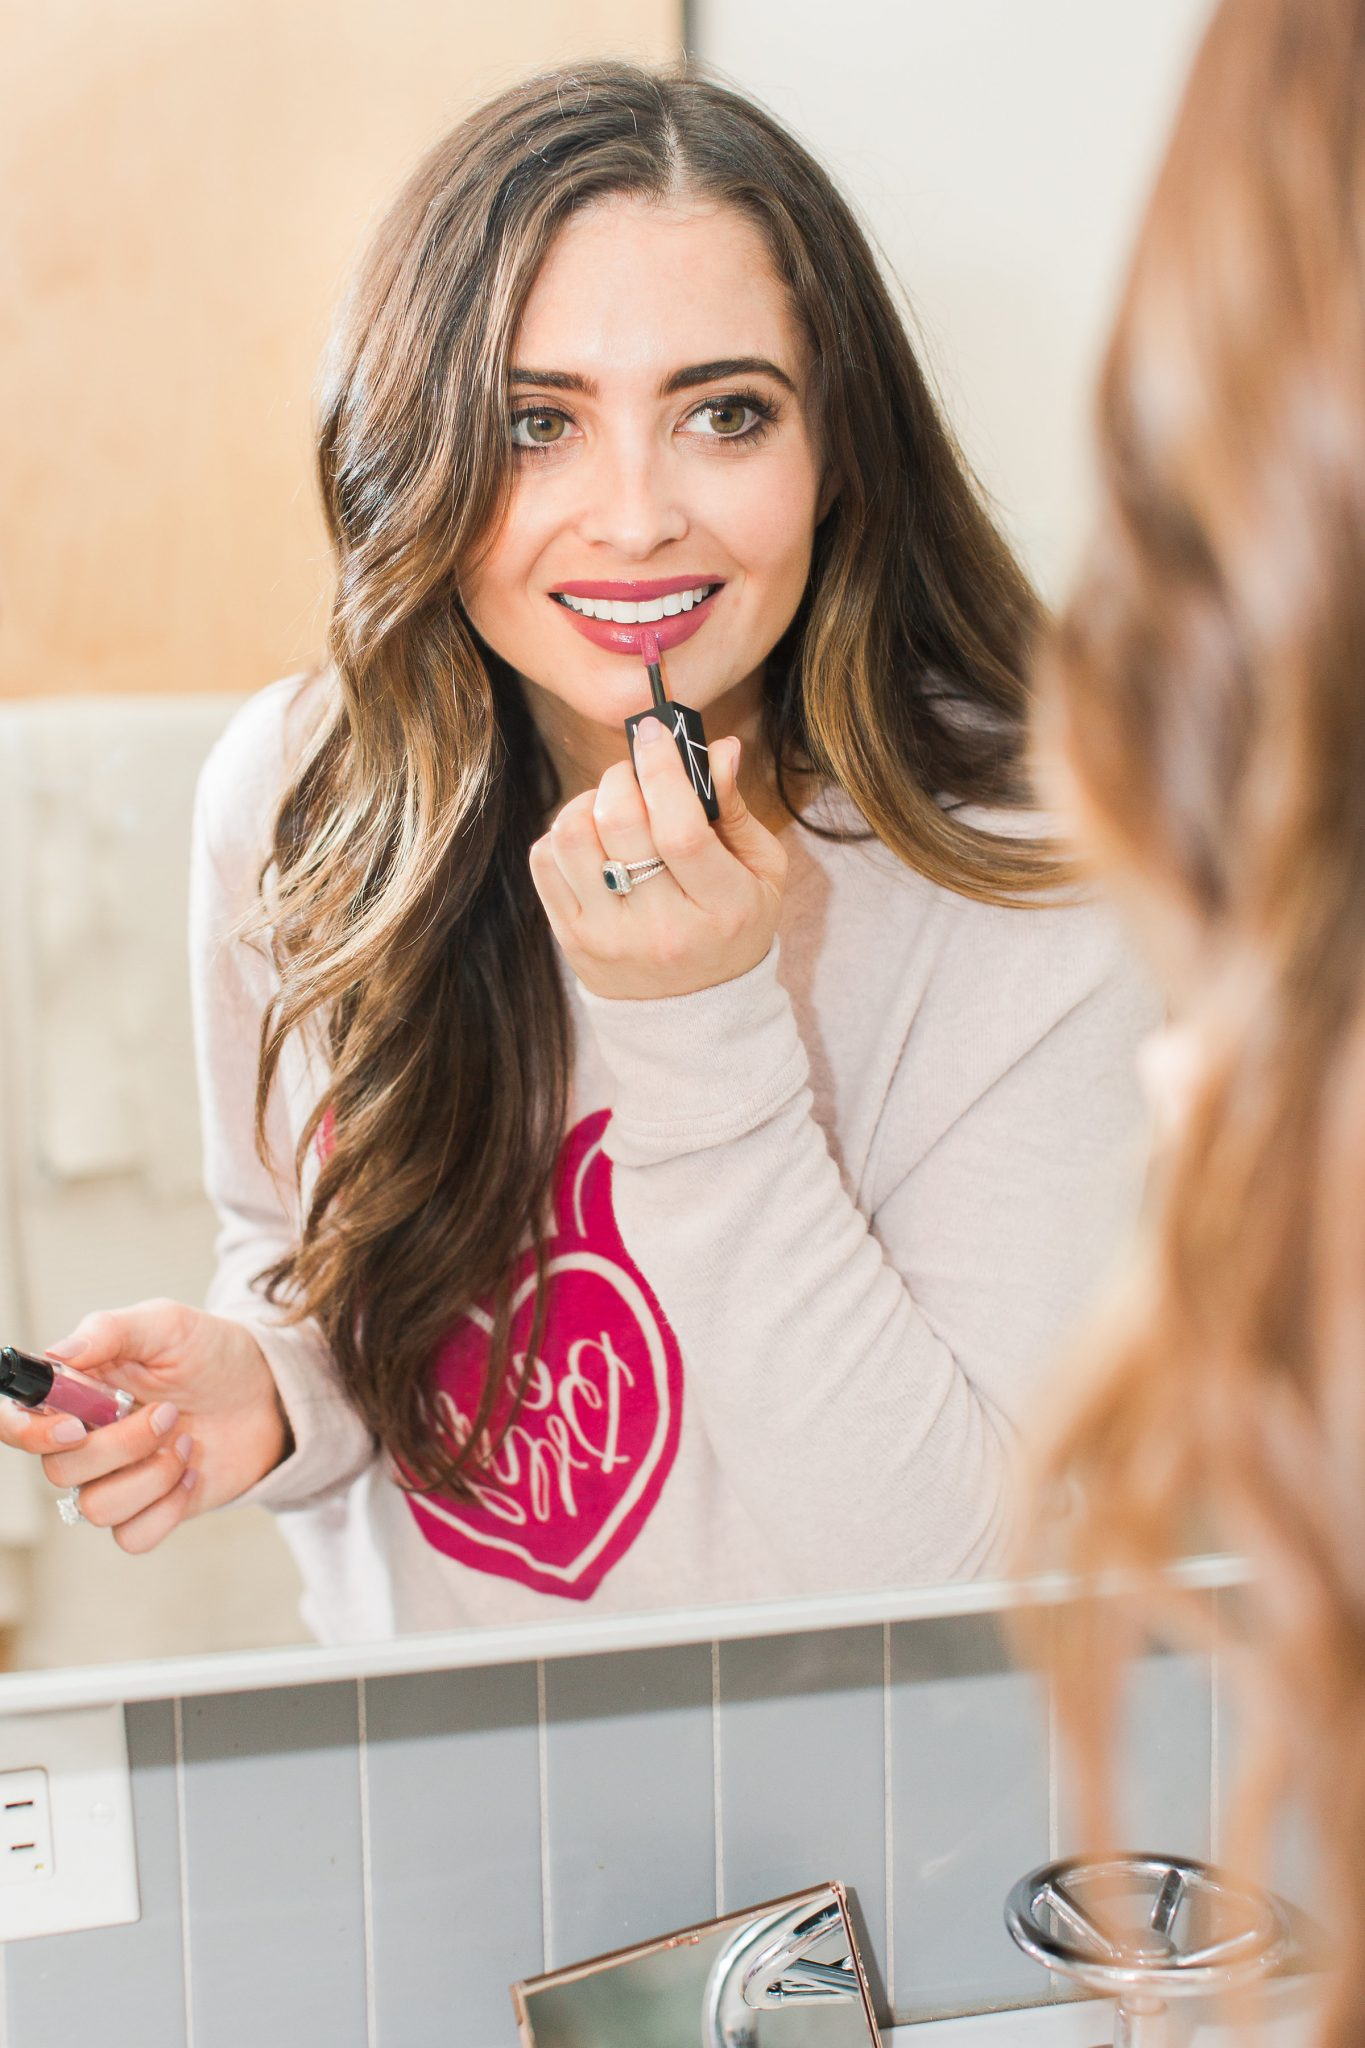 February Beauty Favorites by popular Orange County beauty blogger Maxie Elise